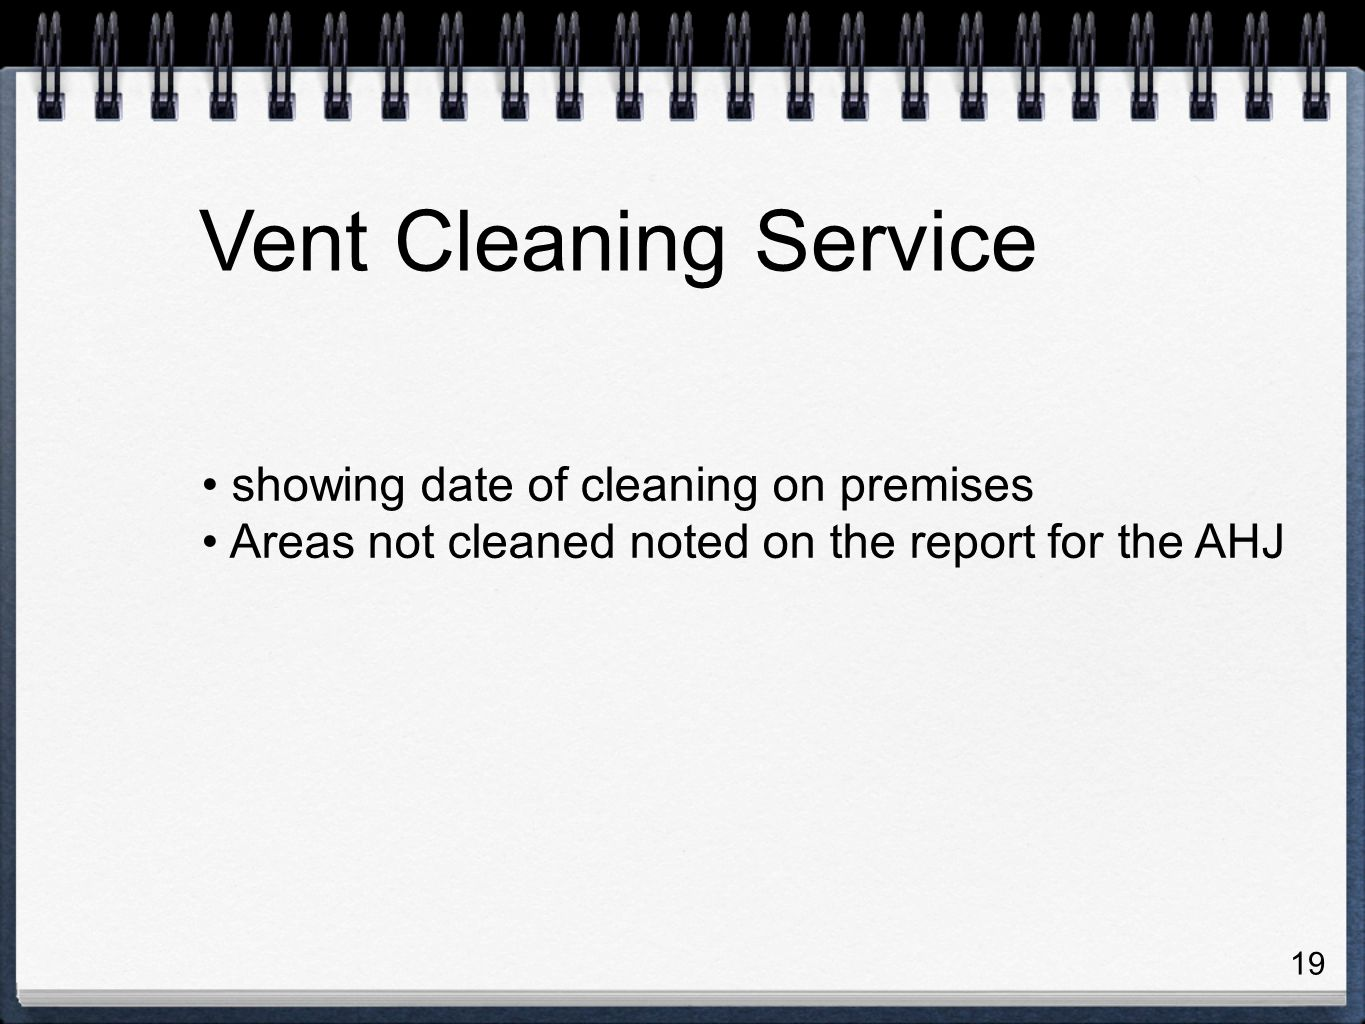 19 showing date of cleaning on premises Areas not cleaned noted on the report for the AHJ Vent Cleaning Service